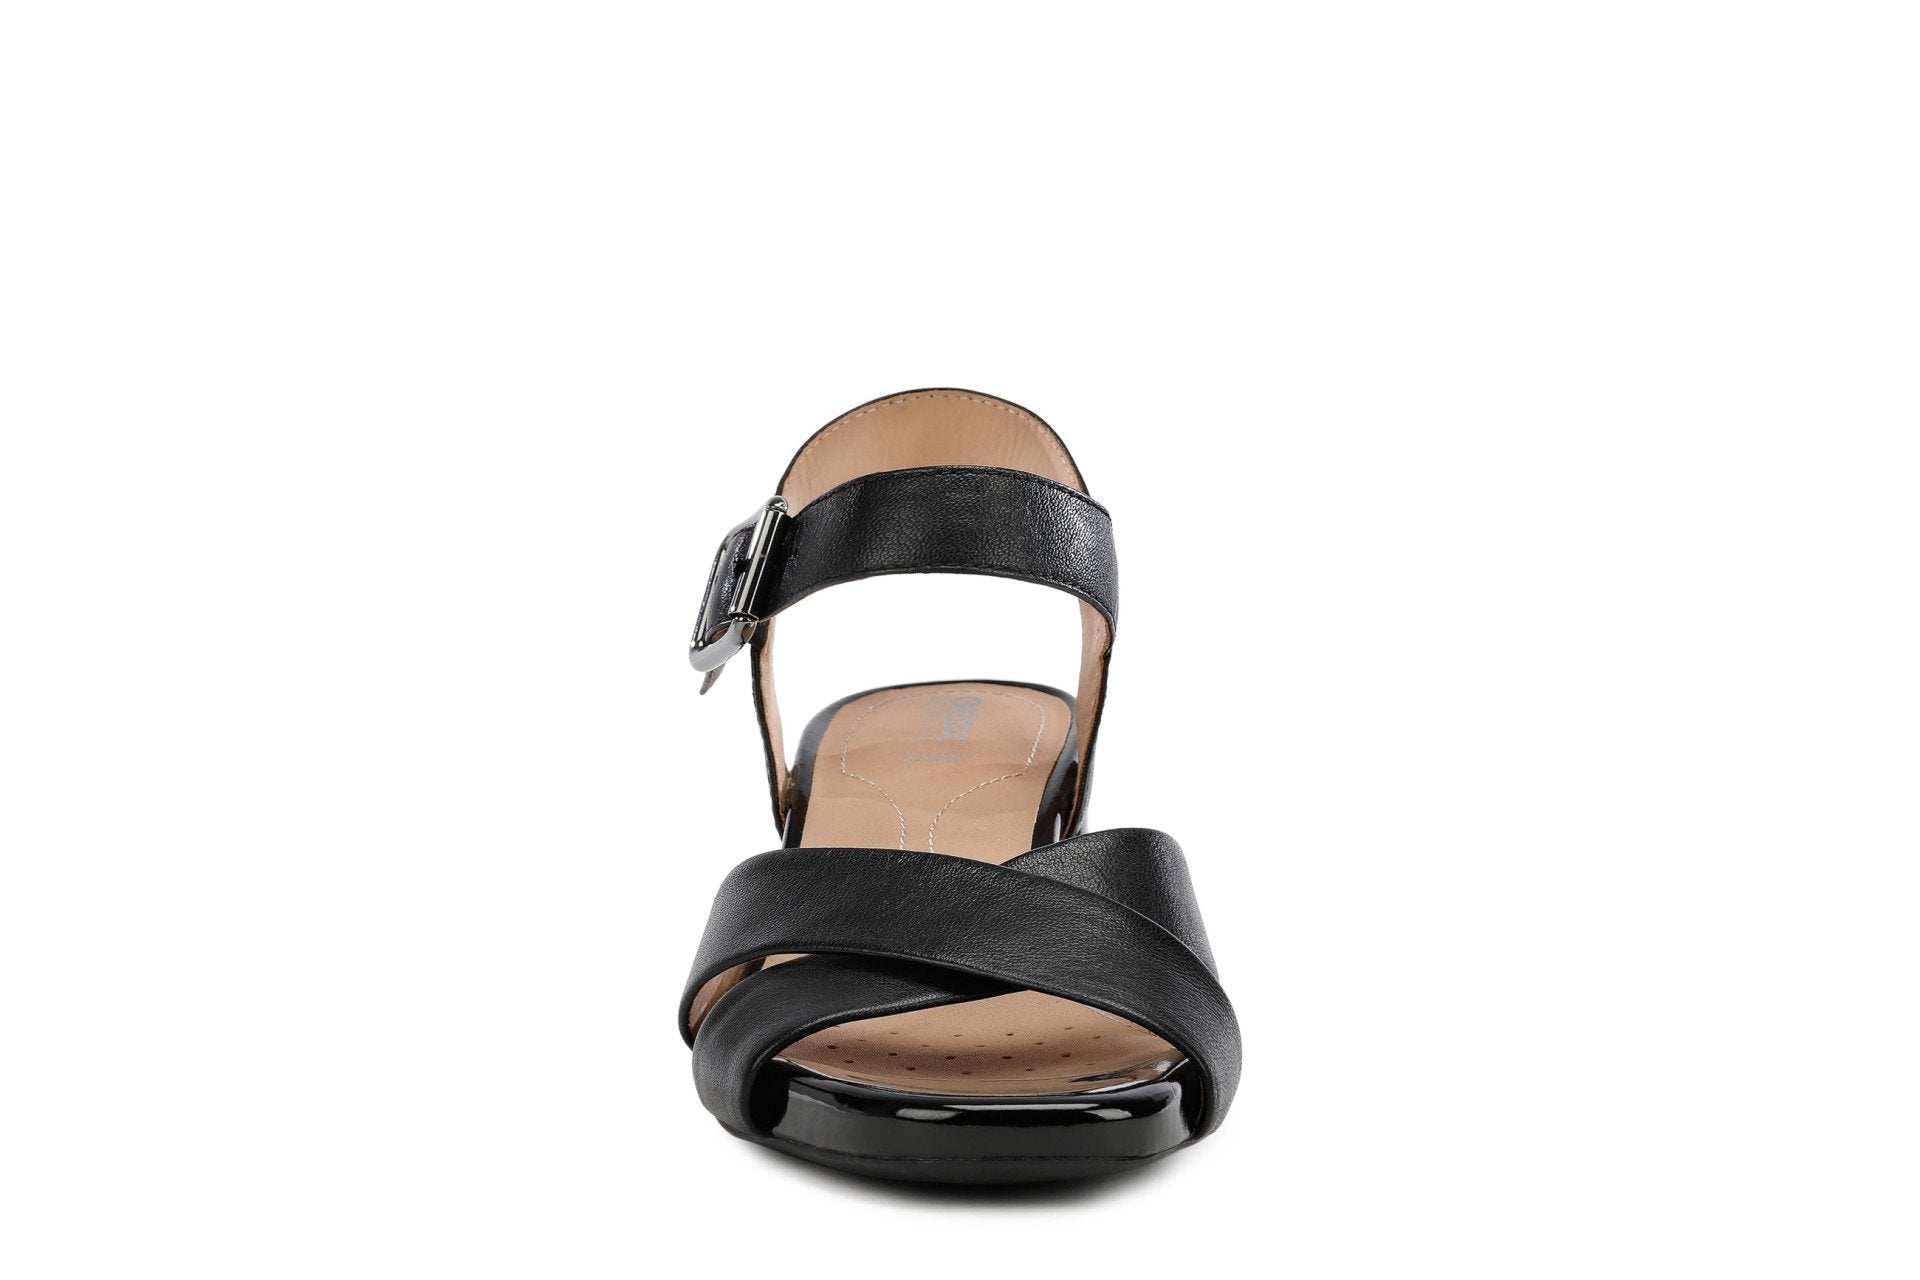 Geox Womens Black D Genziana Mid Sandals D02HAB000TUC9999 | Vilbury London